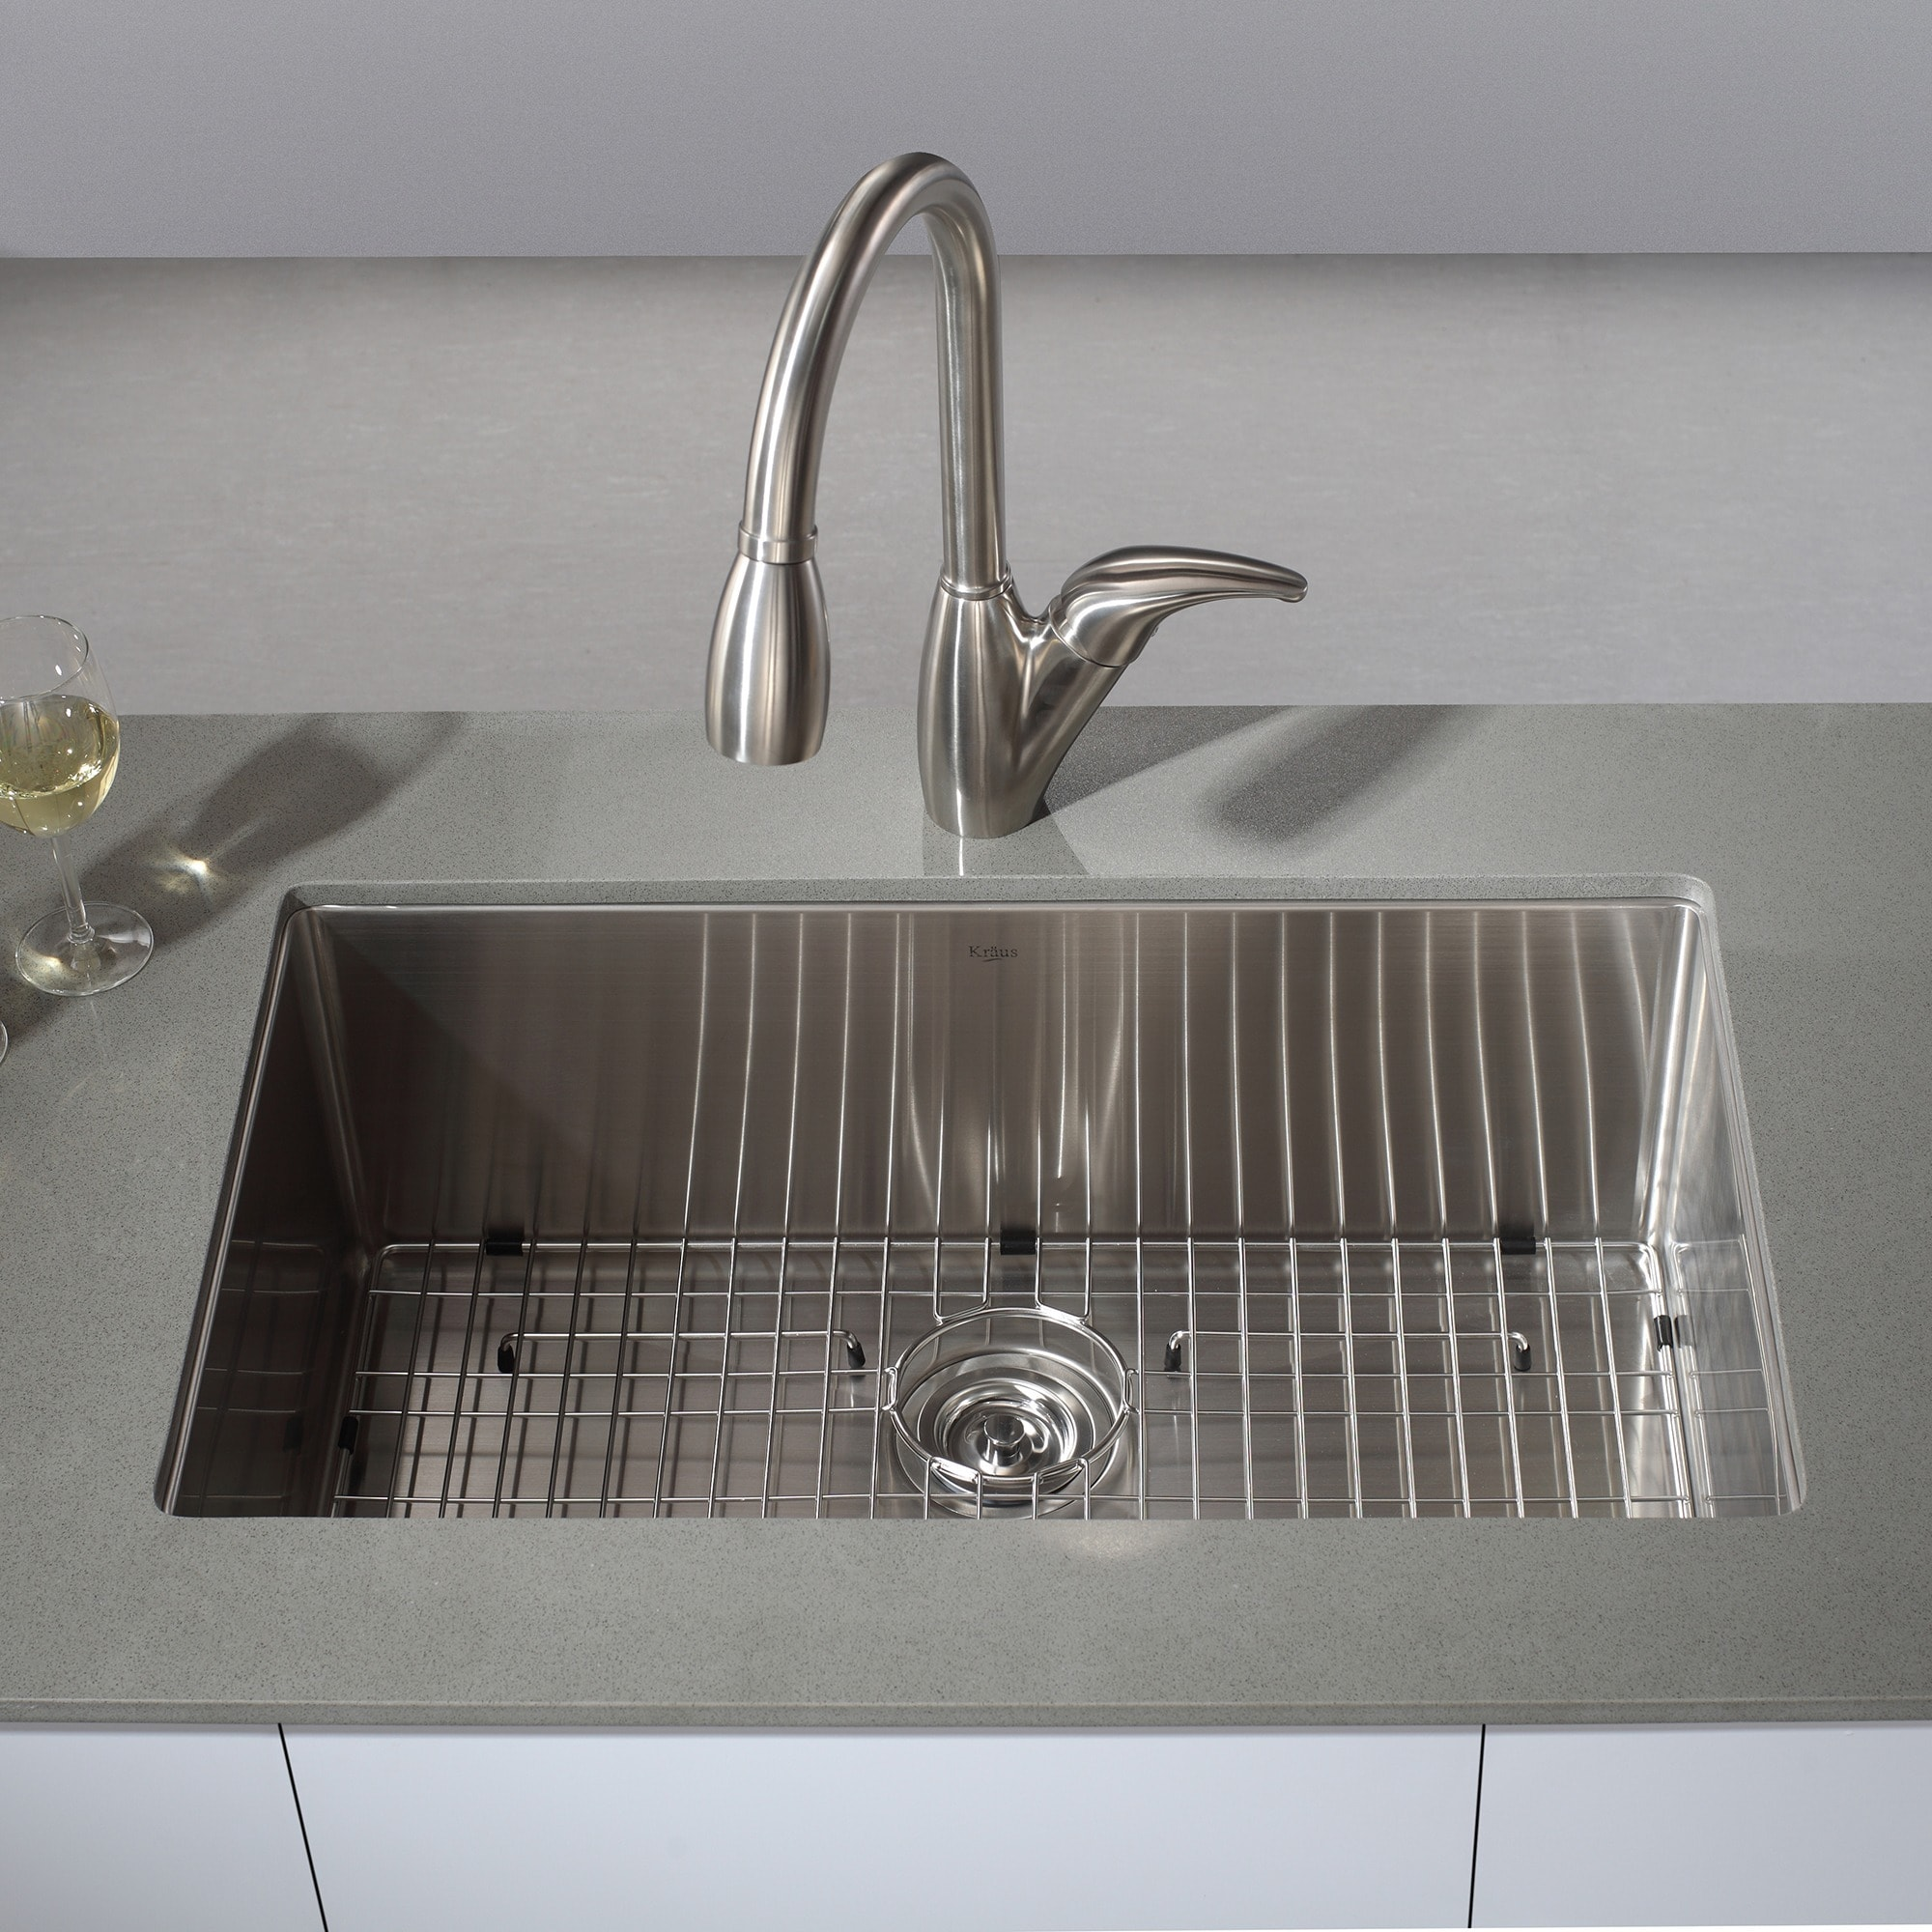 kraus 30 inch undermount single bowl 16 gauge stainless steel kitchen sink with noisedefend soundproofing   free shipping today   overstock com   11477701 kraus 30 inch undermount single bowl 16 gauge stainless steel      rh   overstock com